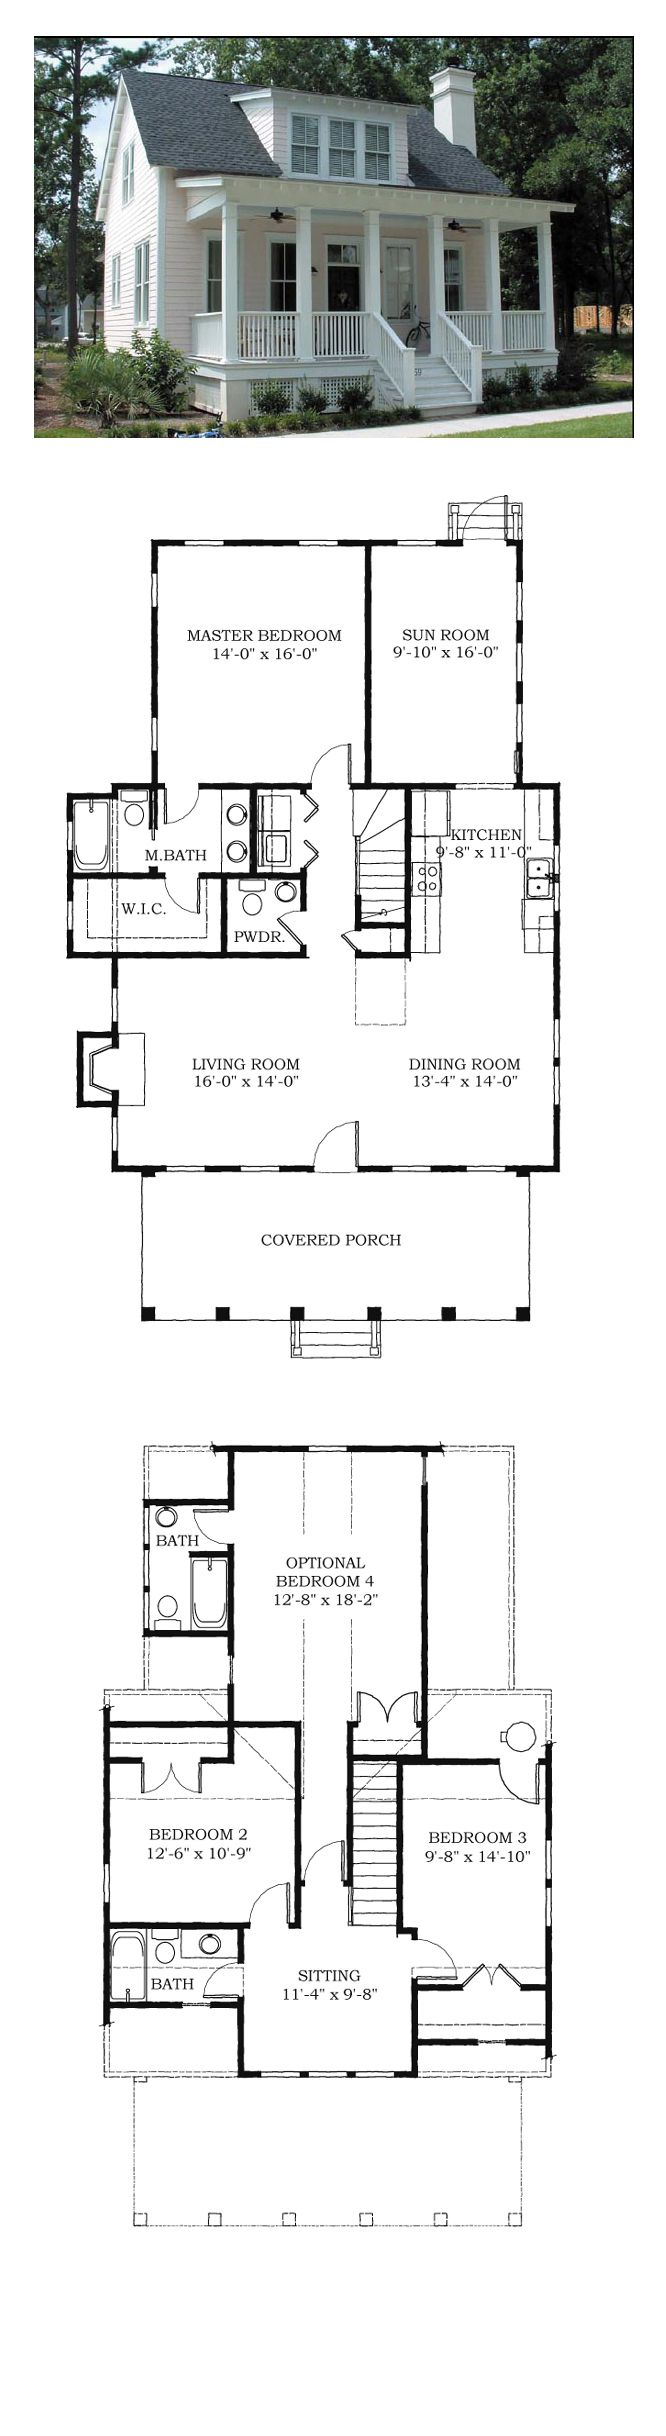 Admirable 17 Best Ideas About Small House Plans On Pinterest Small House Largest Home Design Picture Inspirations Pitcheantrous